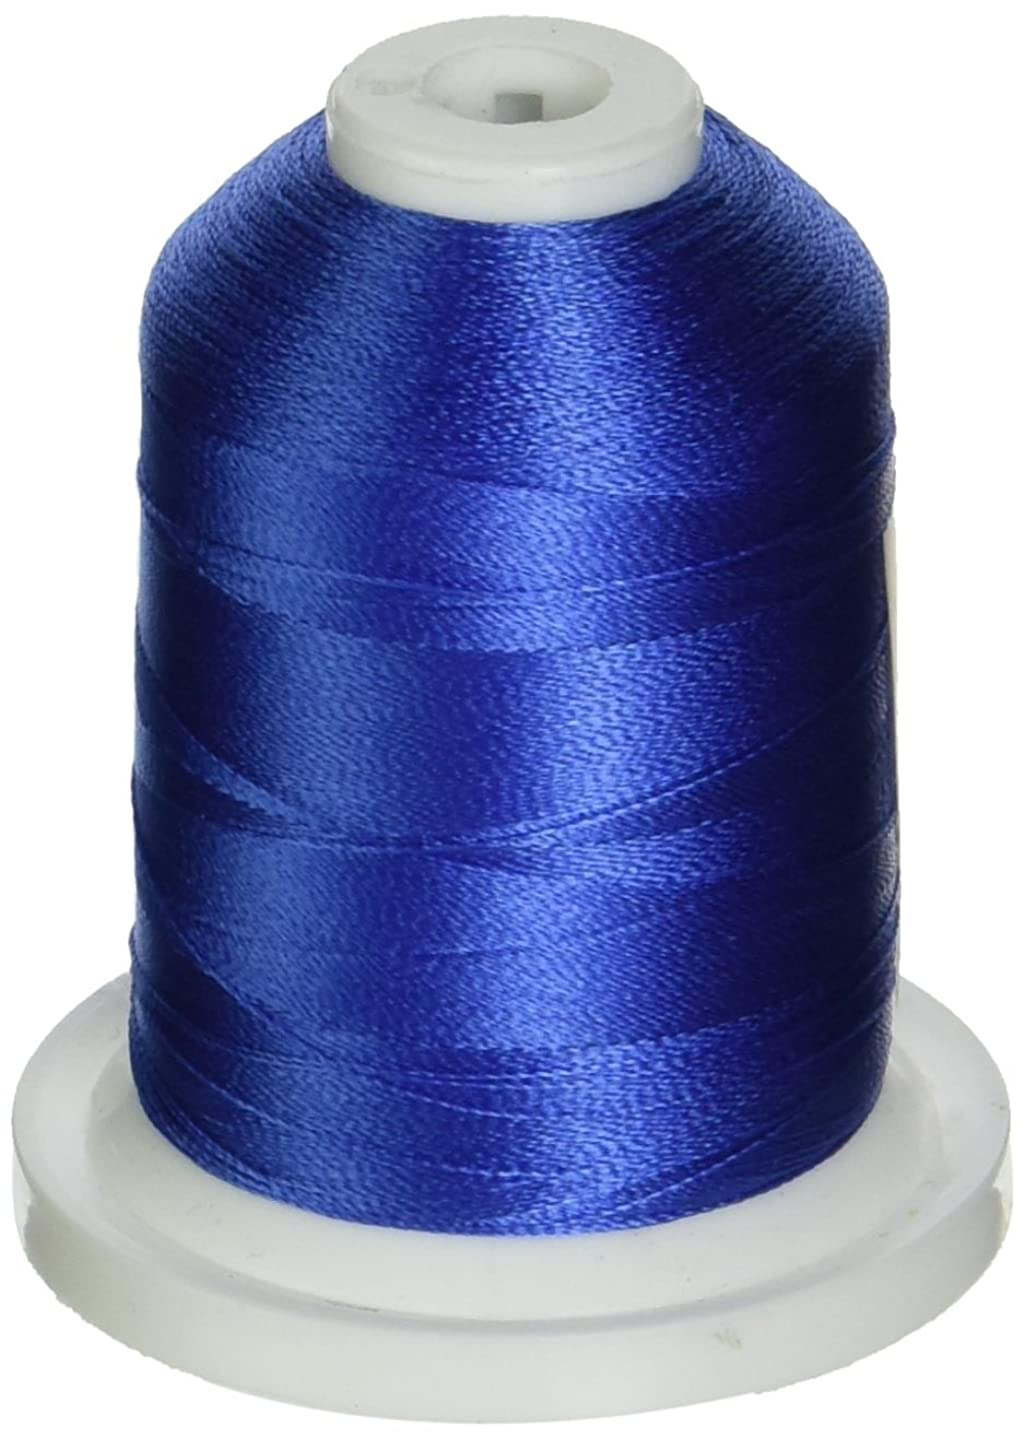 Robison-Anton Rayon Super Strength Thread, 1100-Yard, Jay Blue